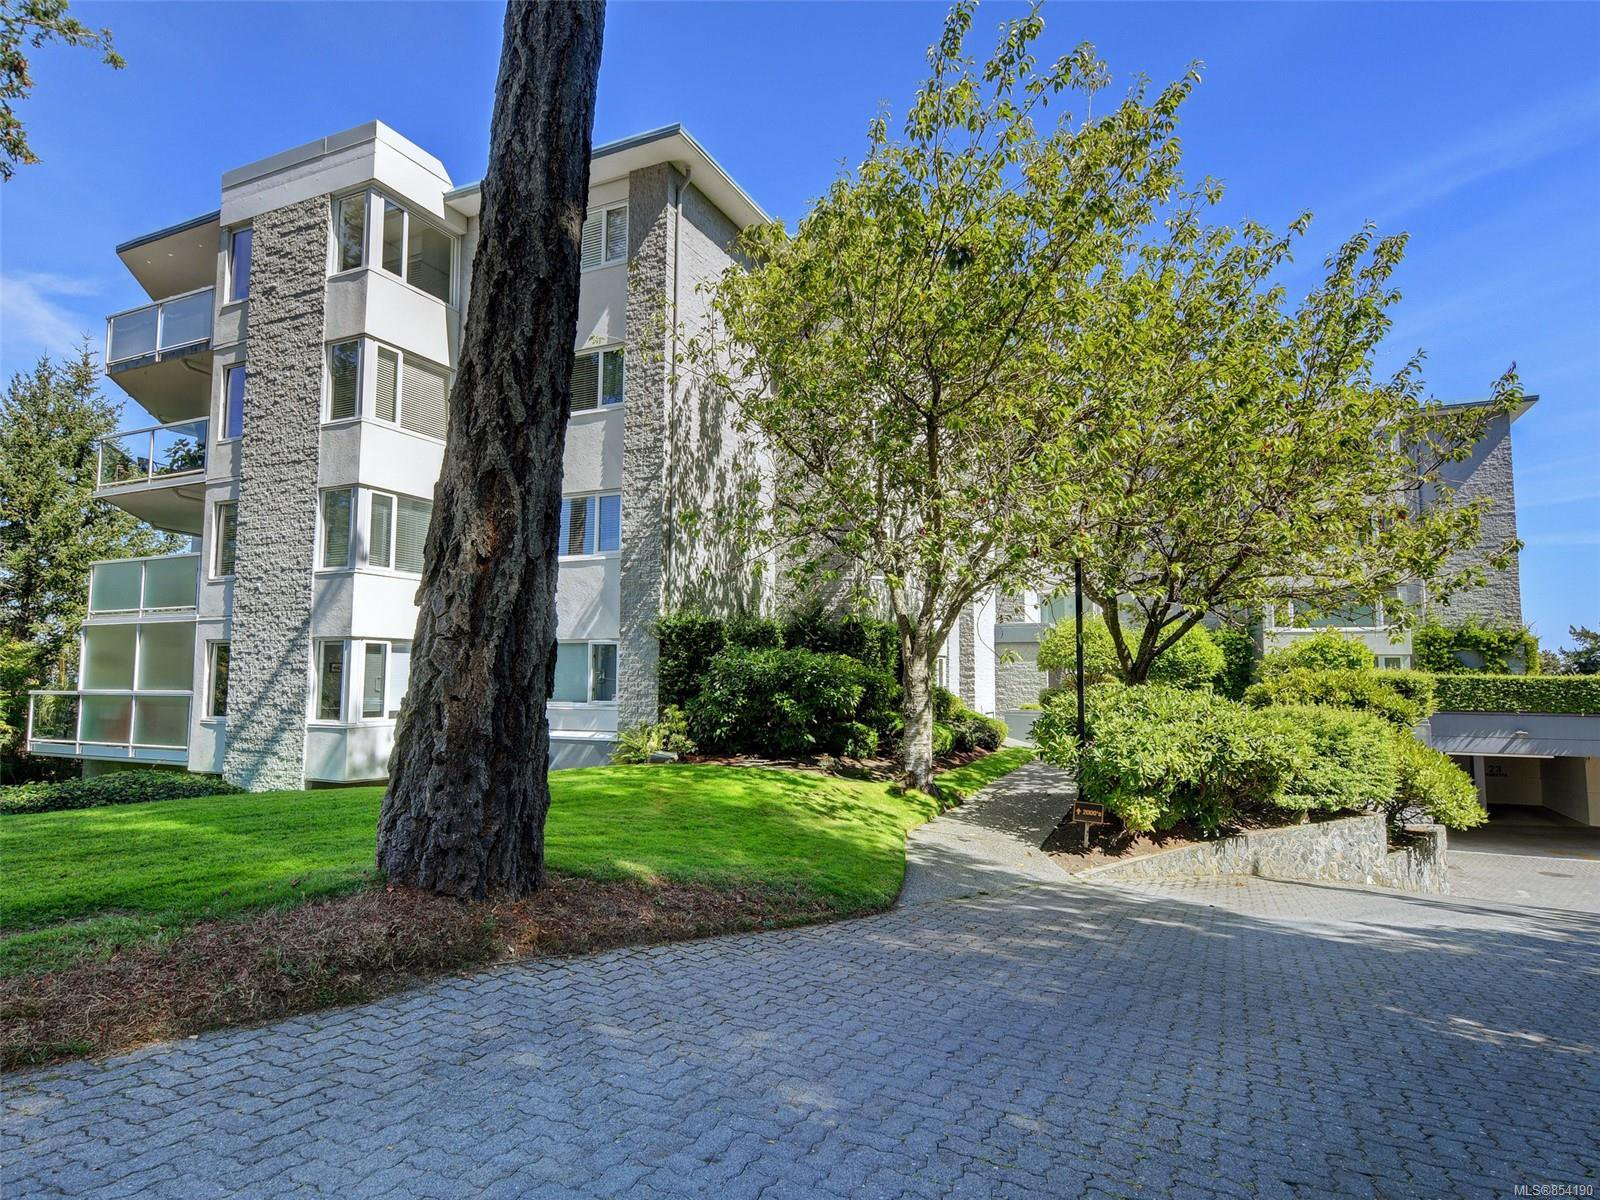 Main Photo: 2303 2829 Arbutus Rd in : SE Ten Mile Point Condo Apartment for sale (Saanich East)  : MLS®# 854190